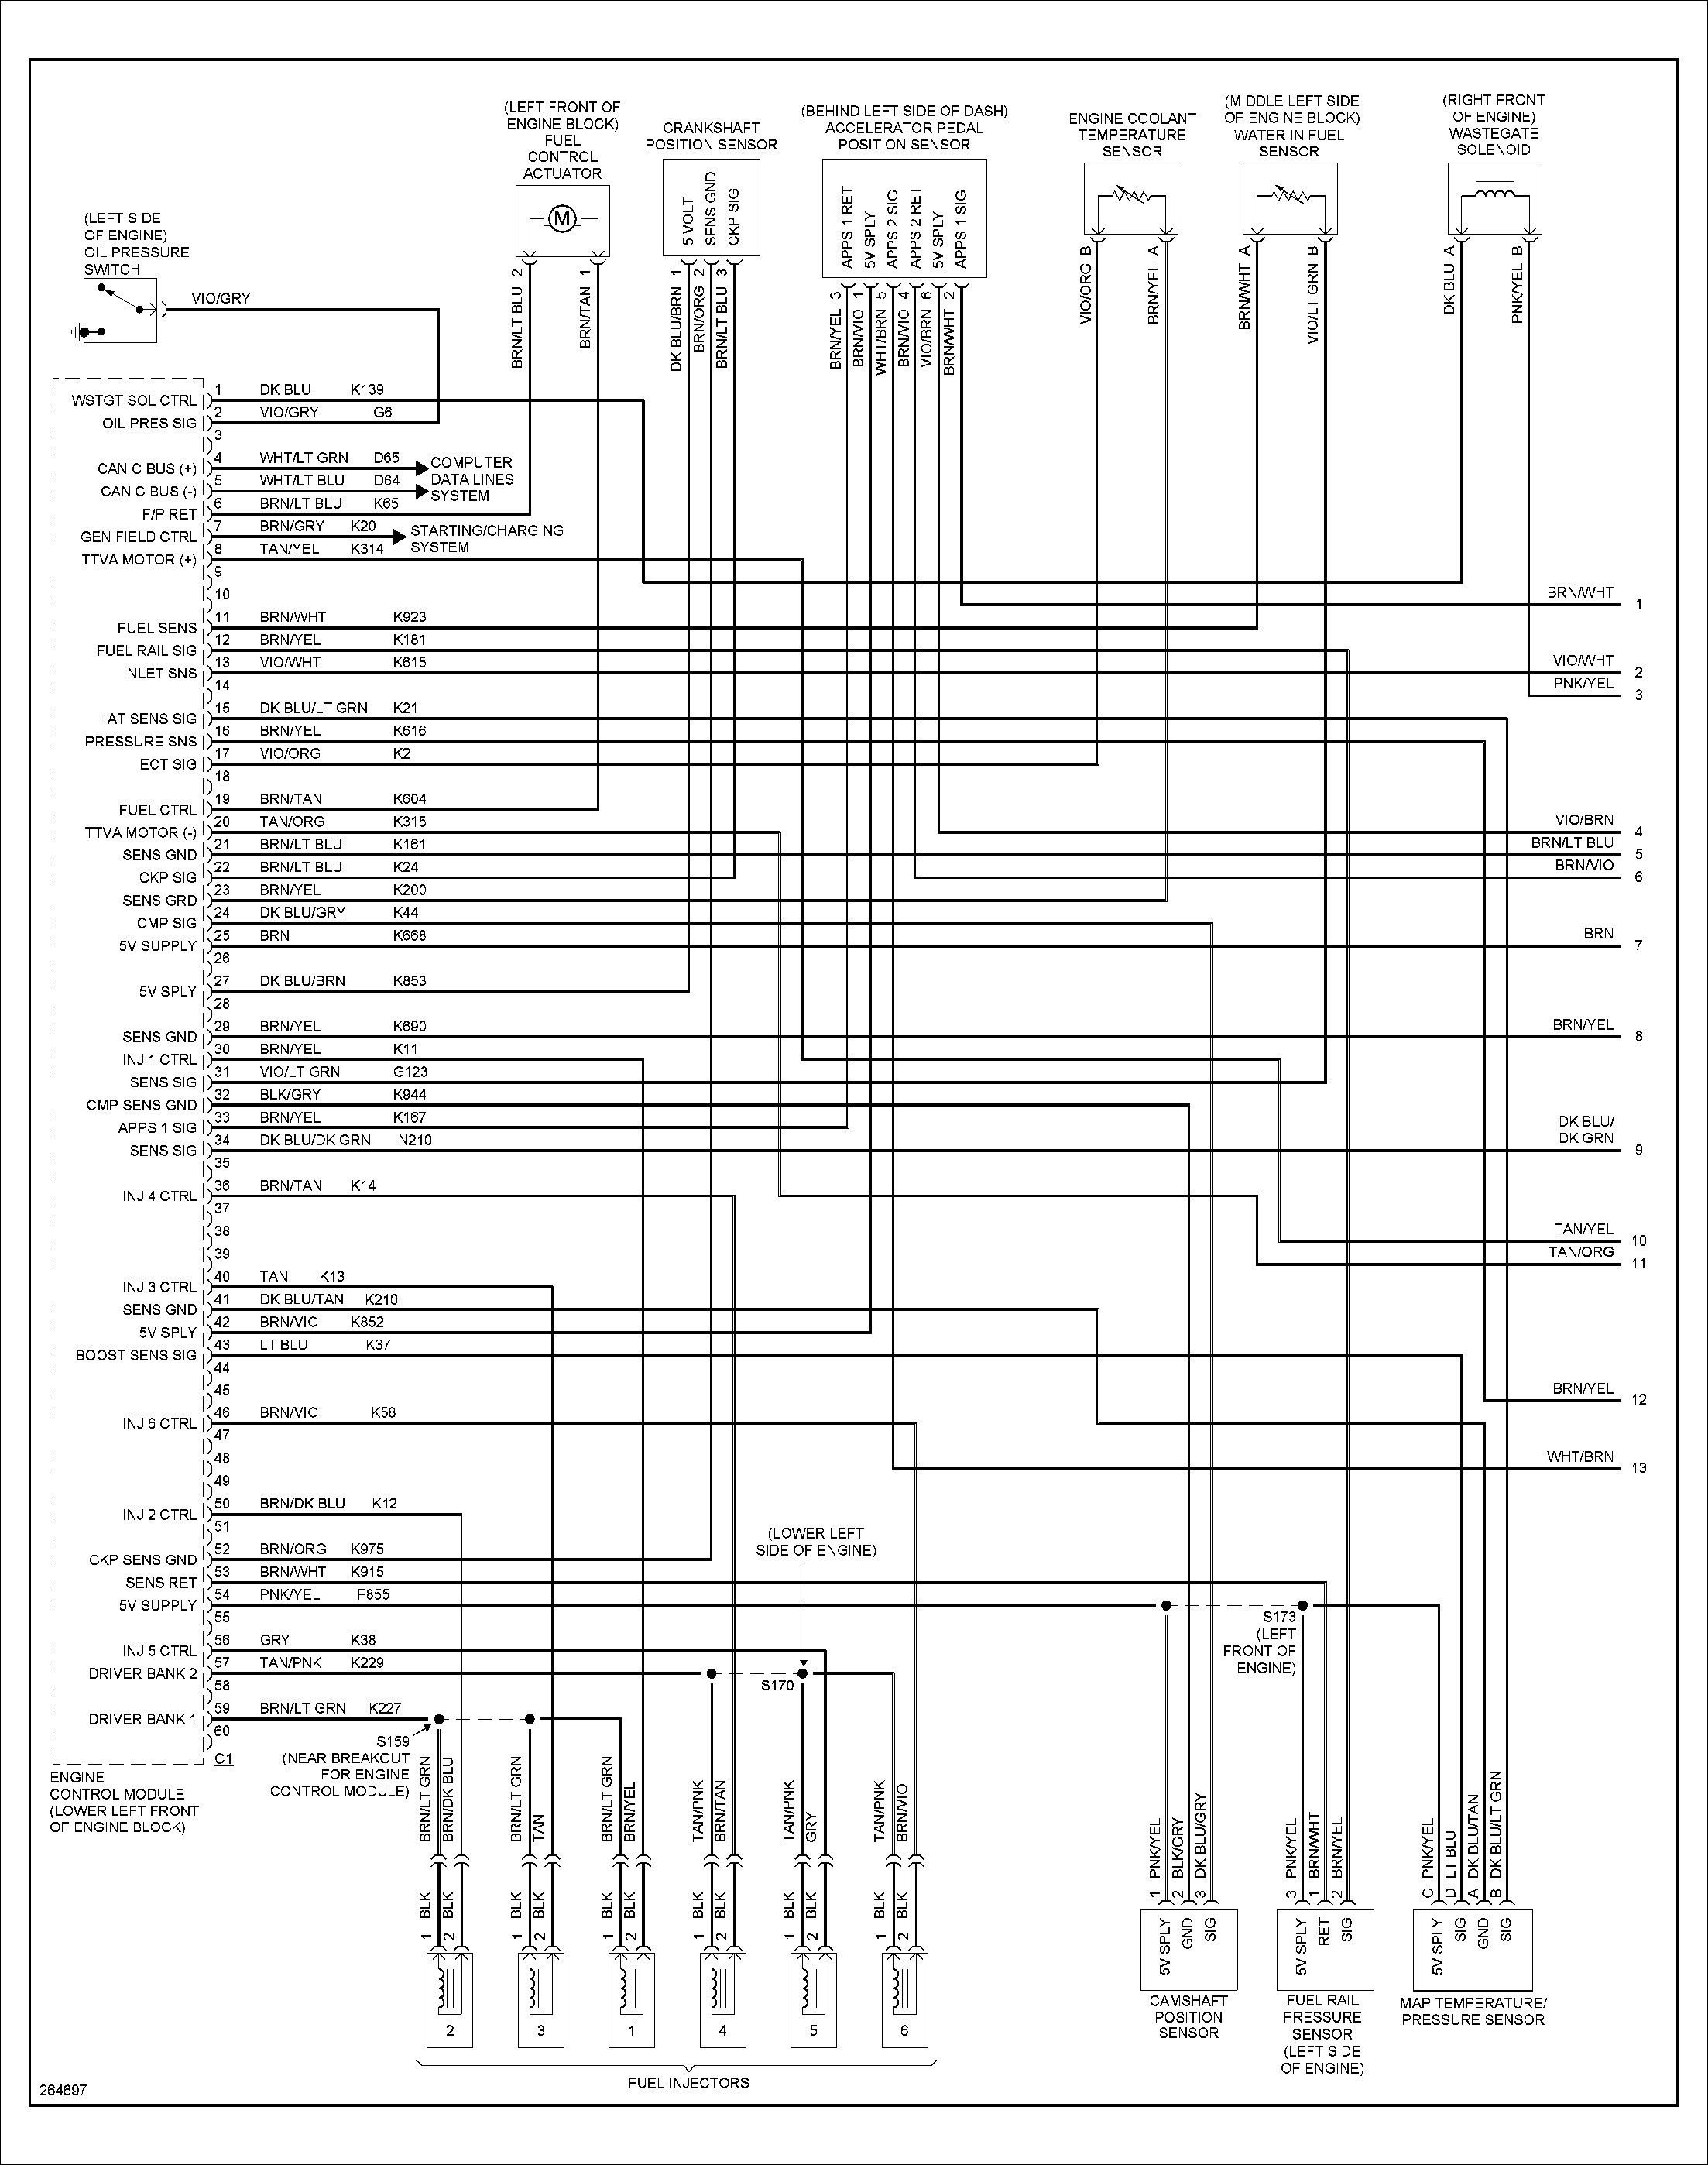 1996 ram 1500 wiring diagram 1996 ram 2500 wiring diagram wiring diagram data 1996 dodge ram 1500 speaker wiring diagram 1996 ram 2500 wiring diagram wiring